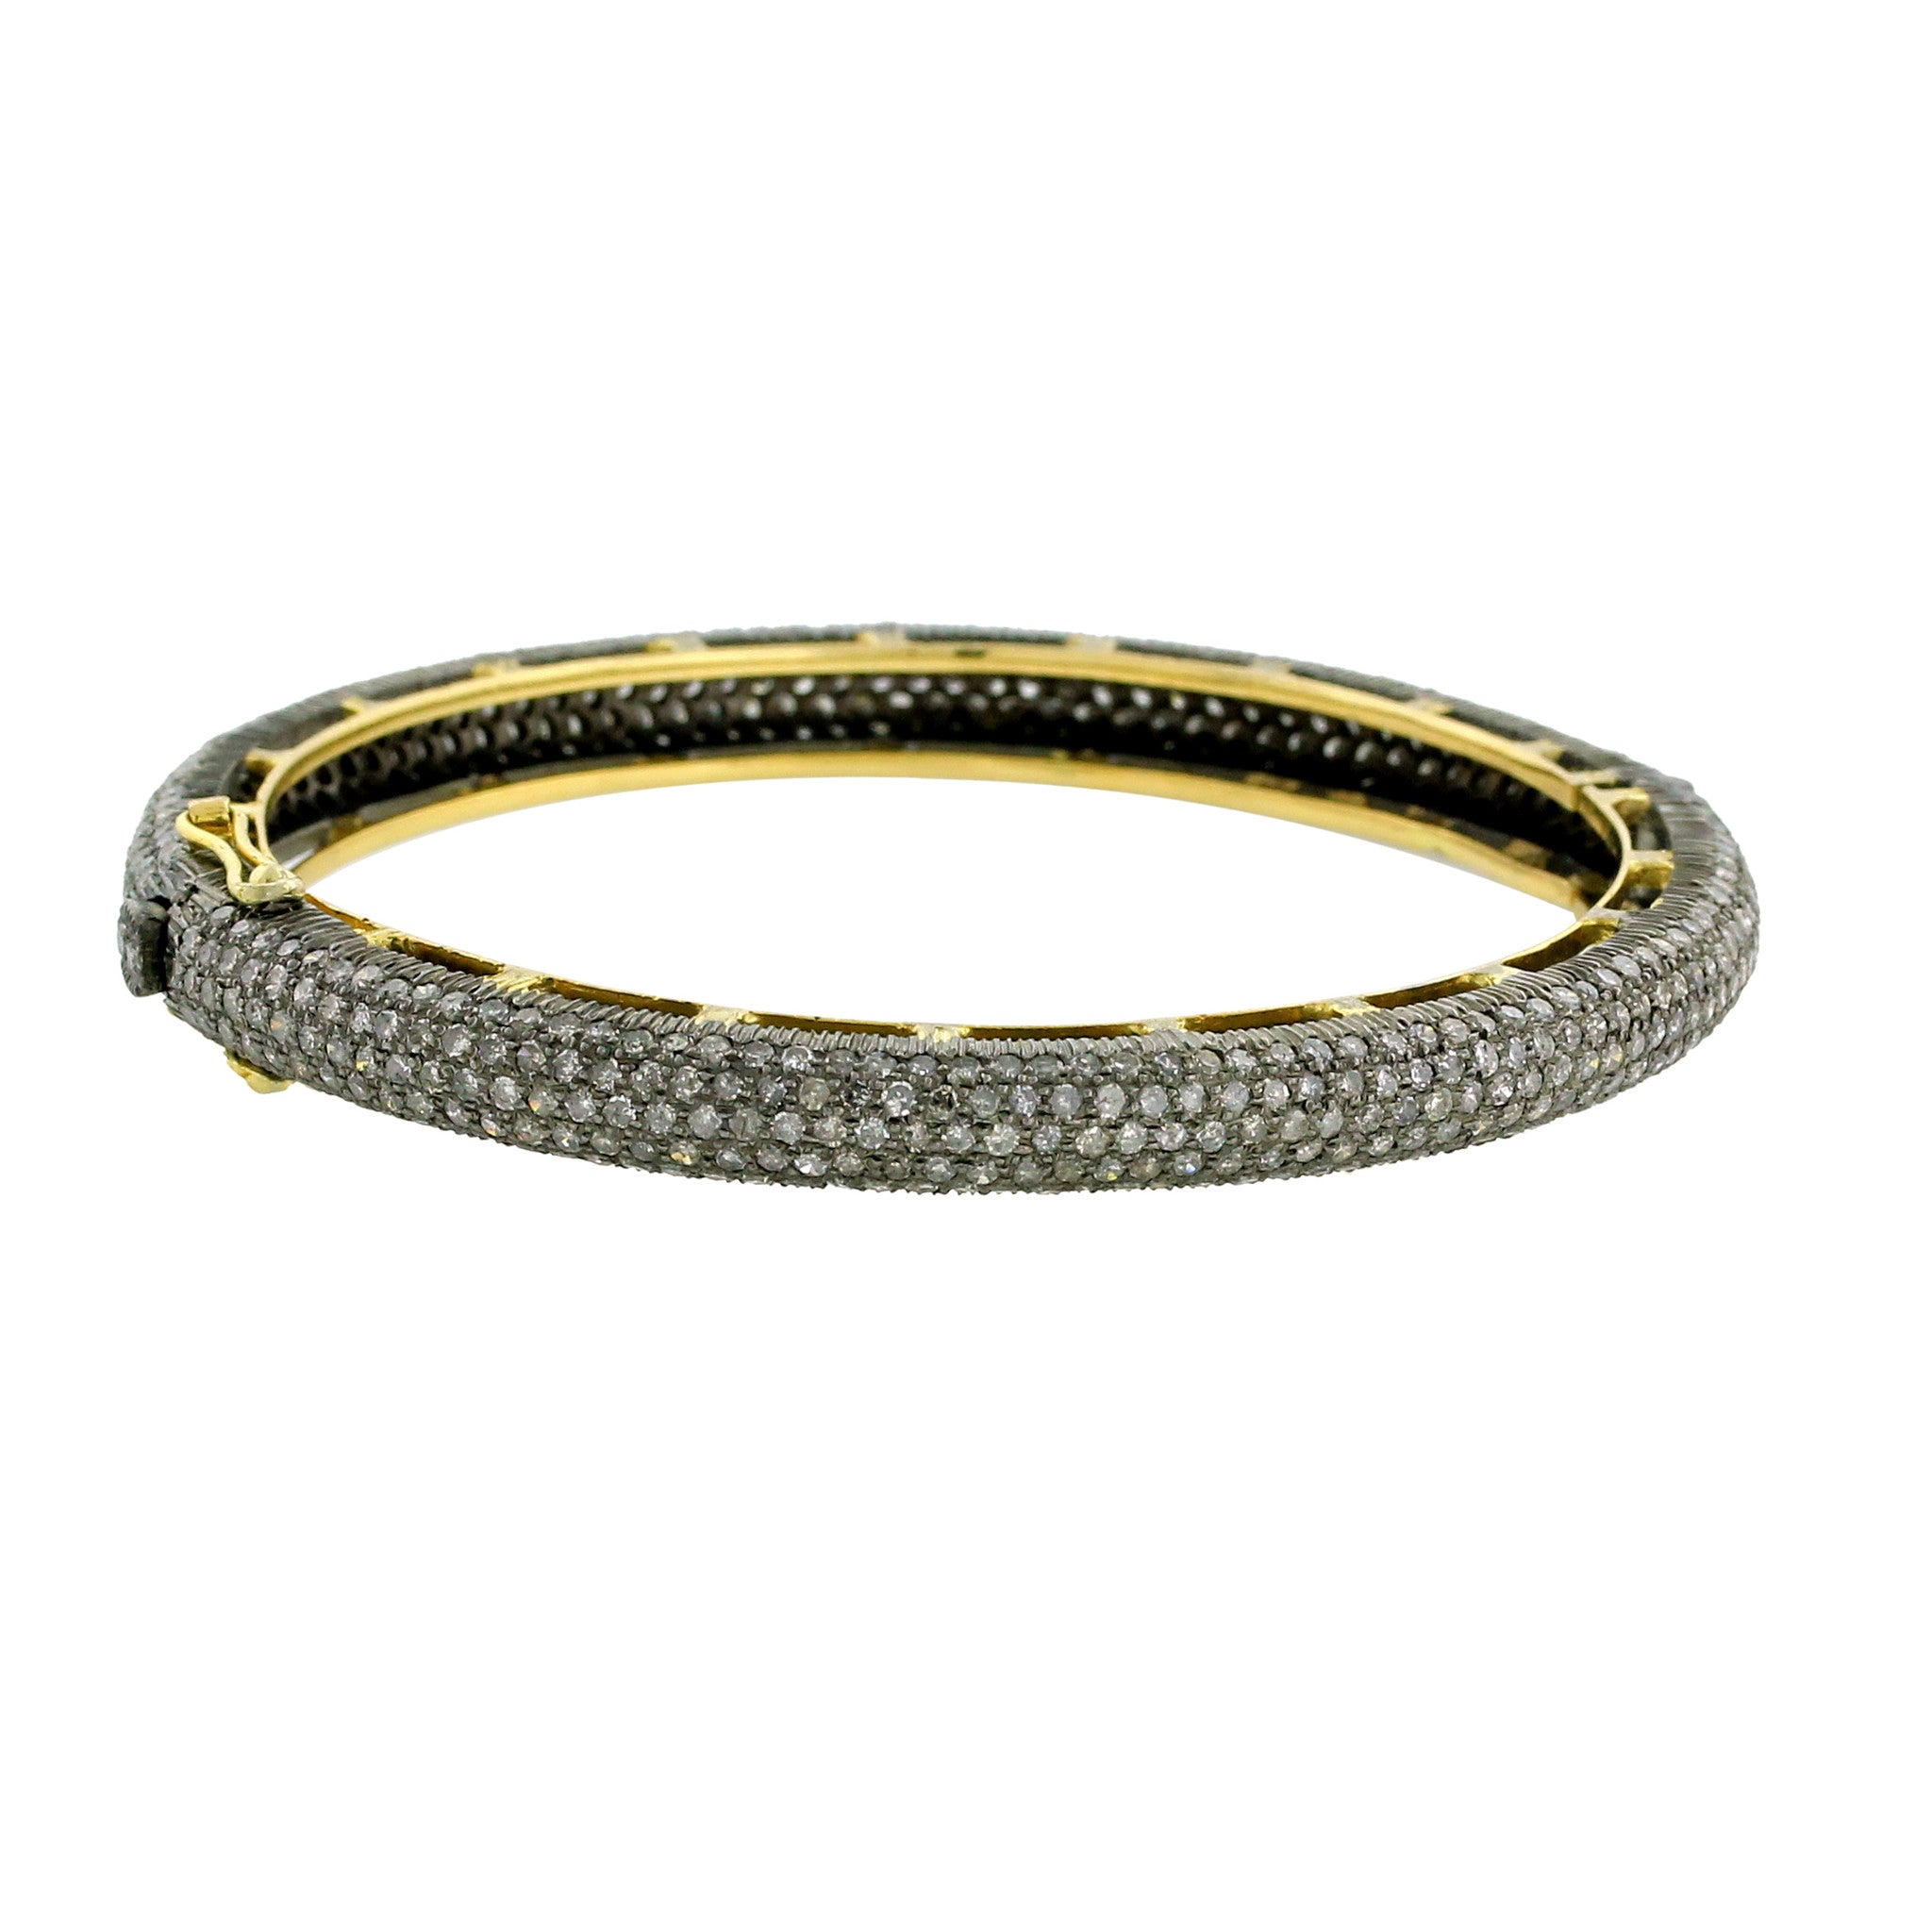 odelia diamond bracelet full pave jewelry bangles gold bangle rose